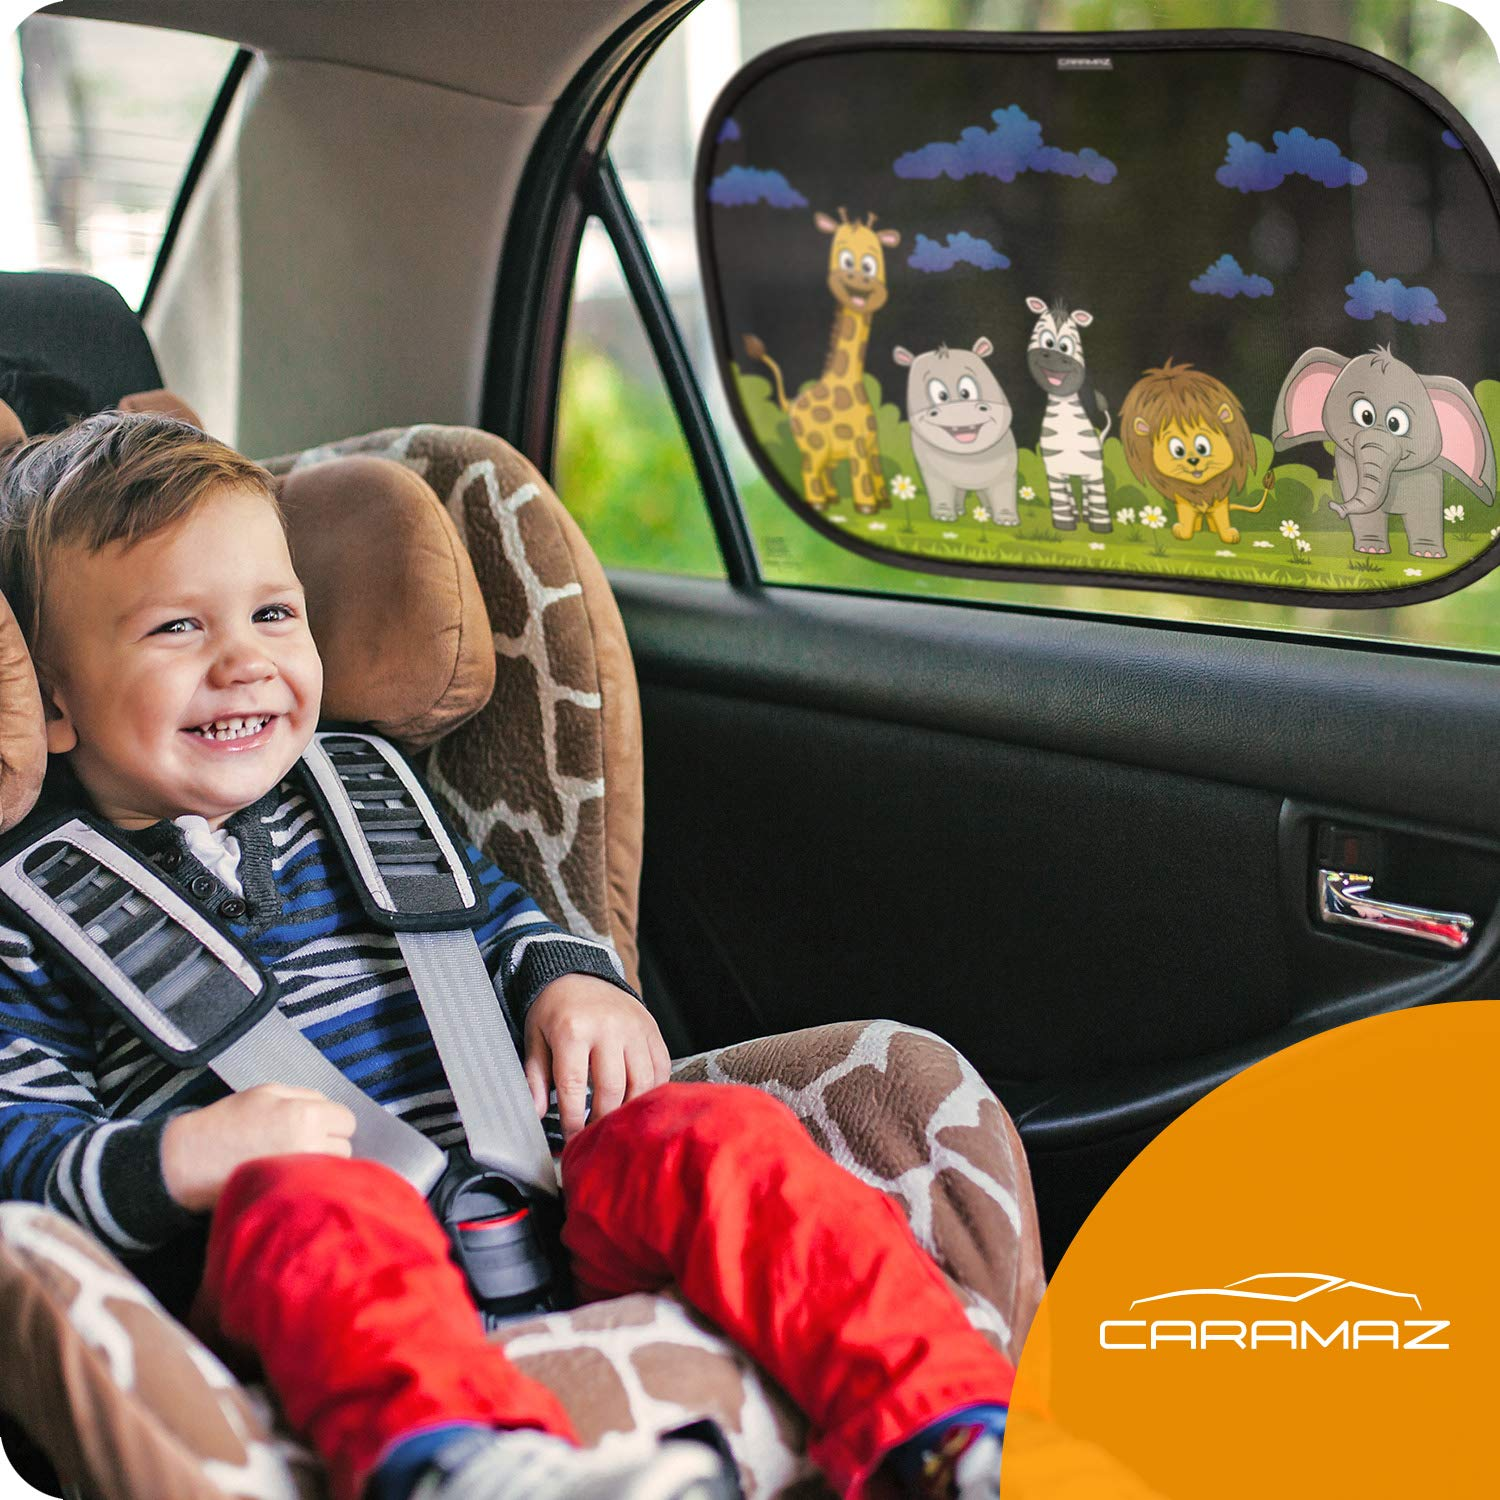 Extra Dark with Certified UV Protection Black Set of 2 Self-Adhesive Sunshades for Kids Systemoto Car Window Shades for Baby